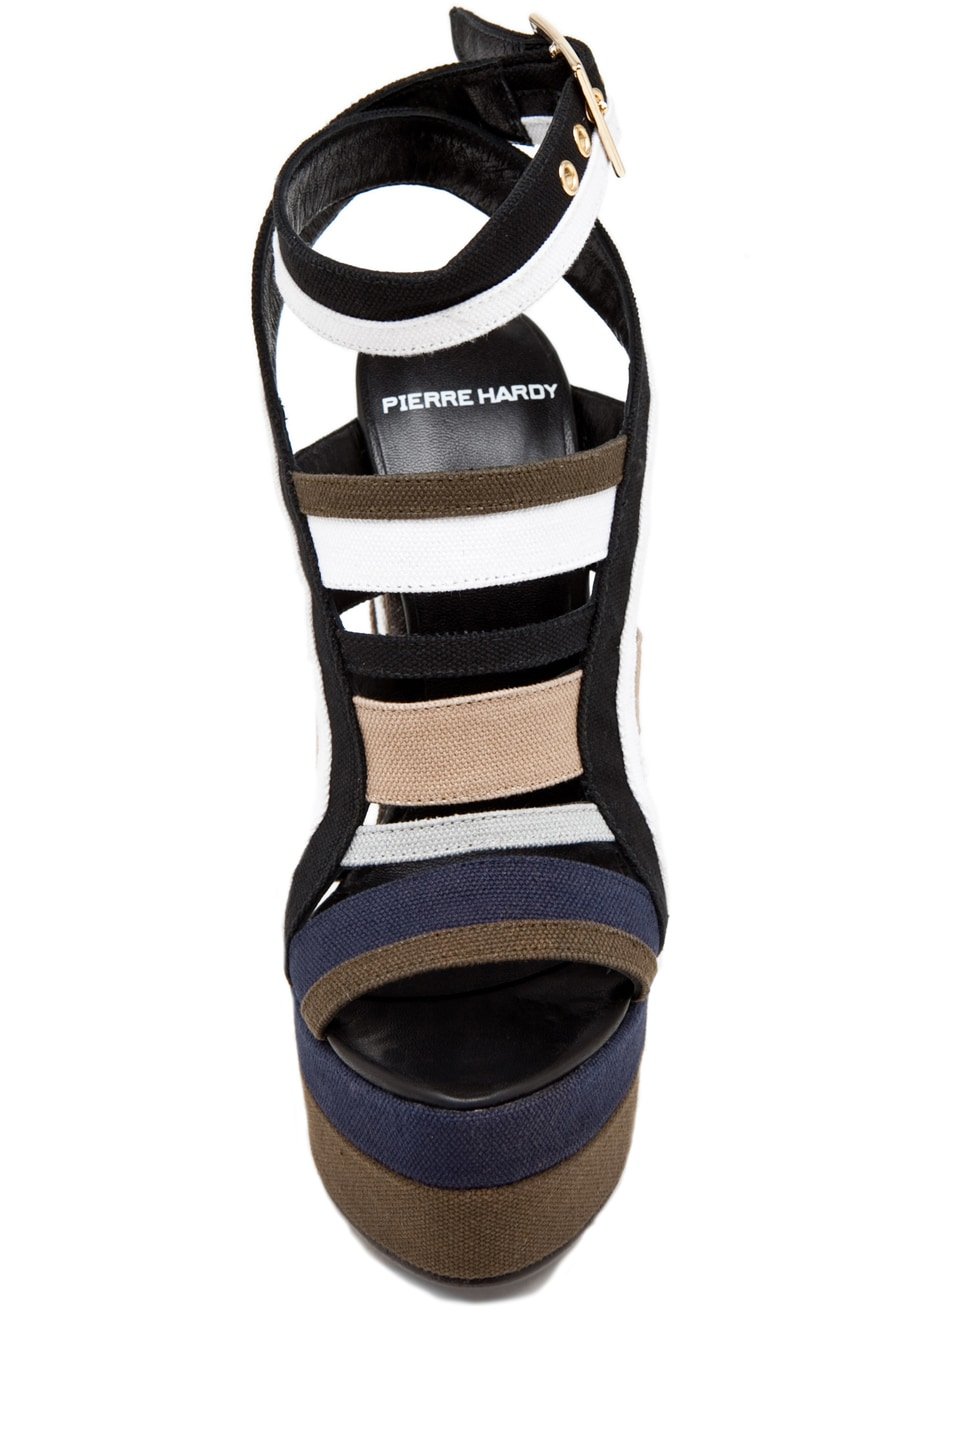 Image 4 of Pierre Hardy Canvas Multi Colored Wedge in Multi Kaki